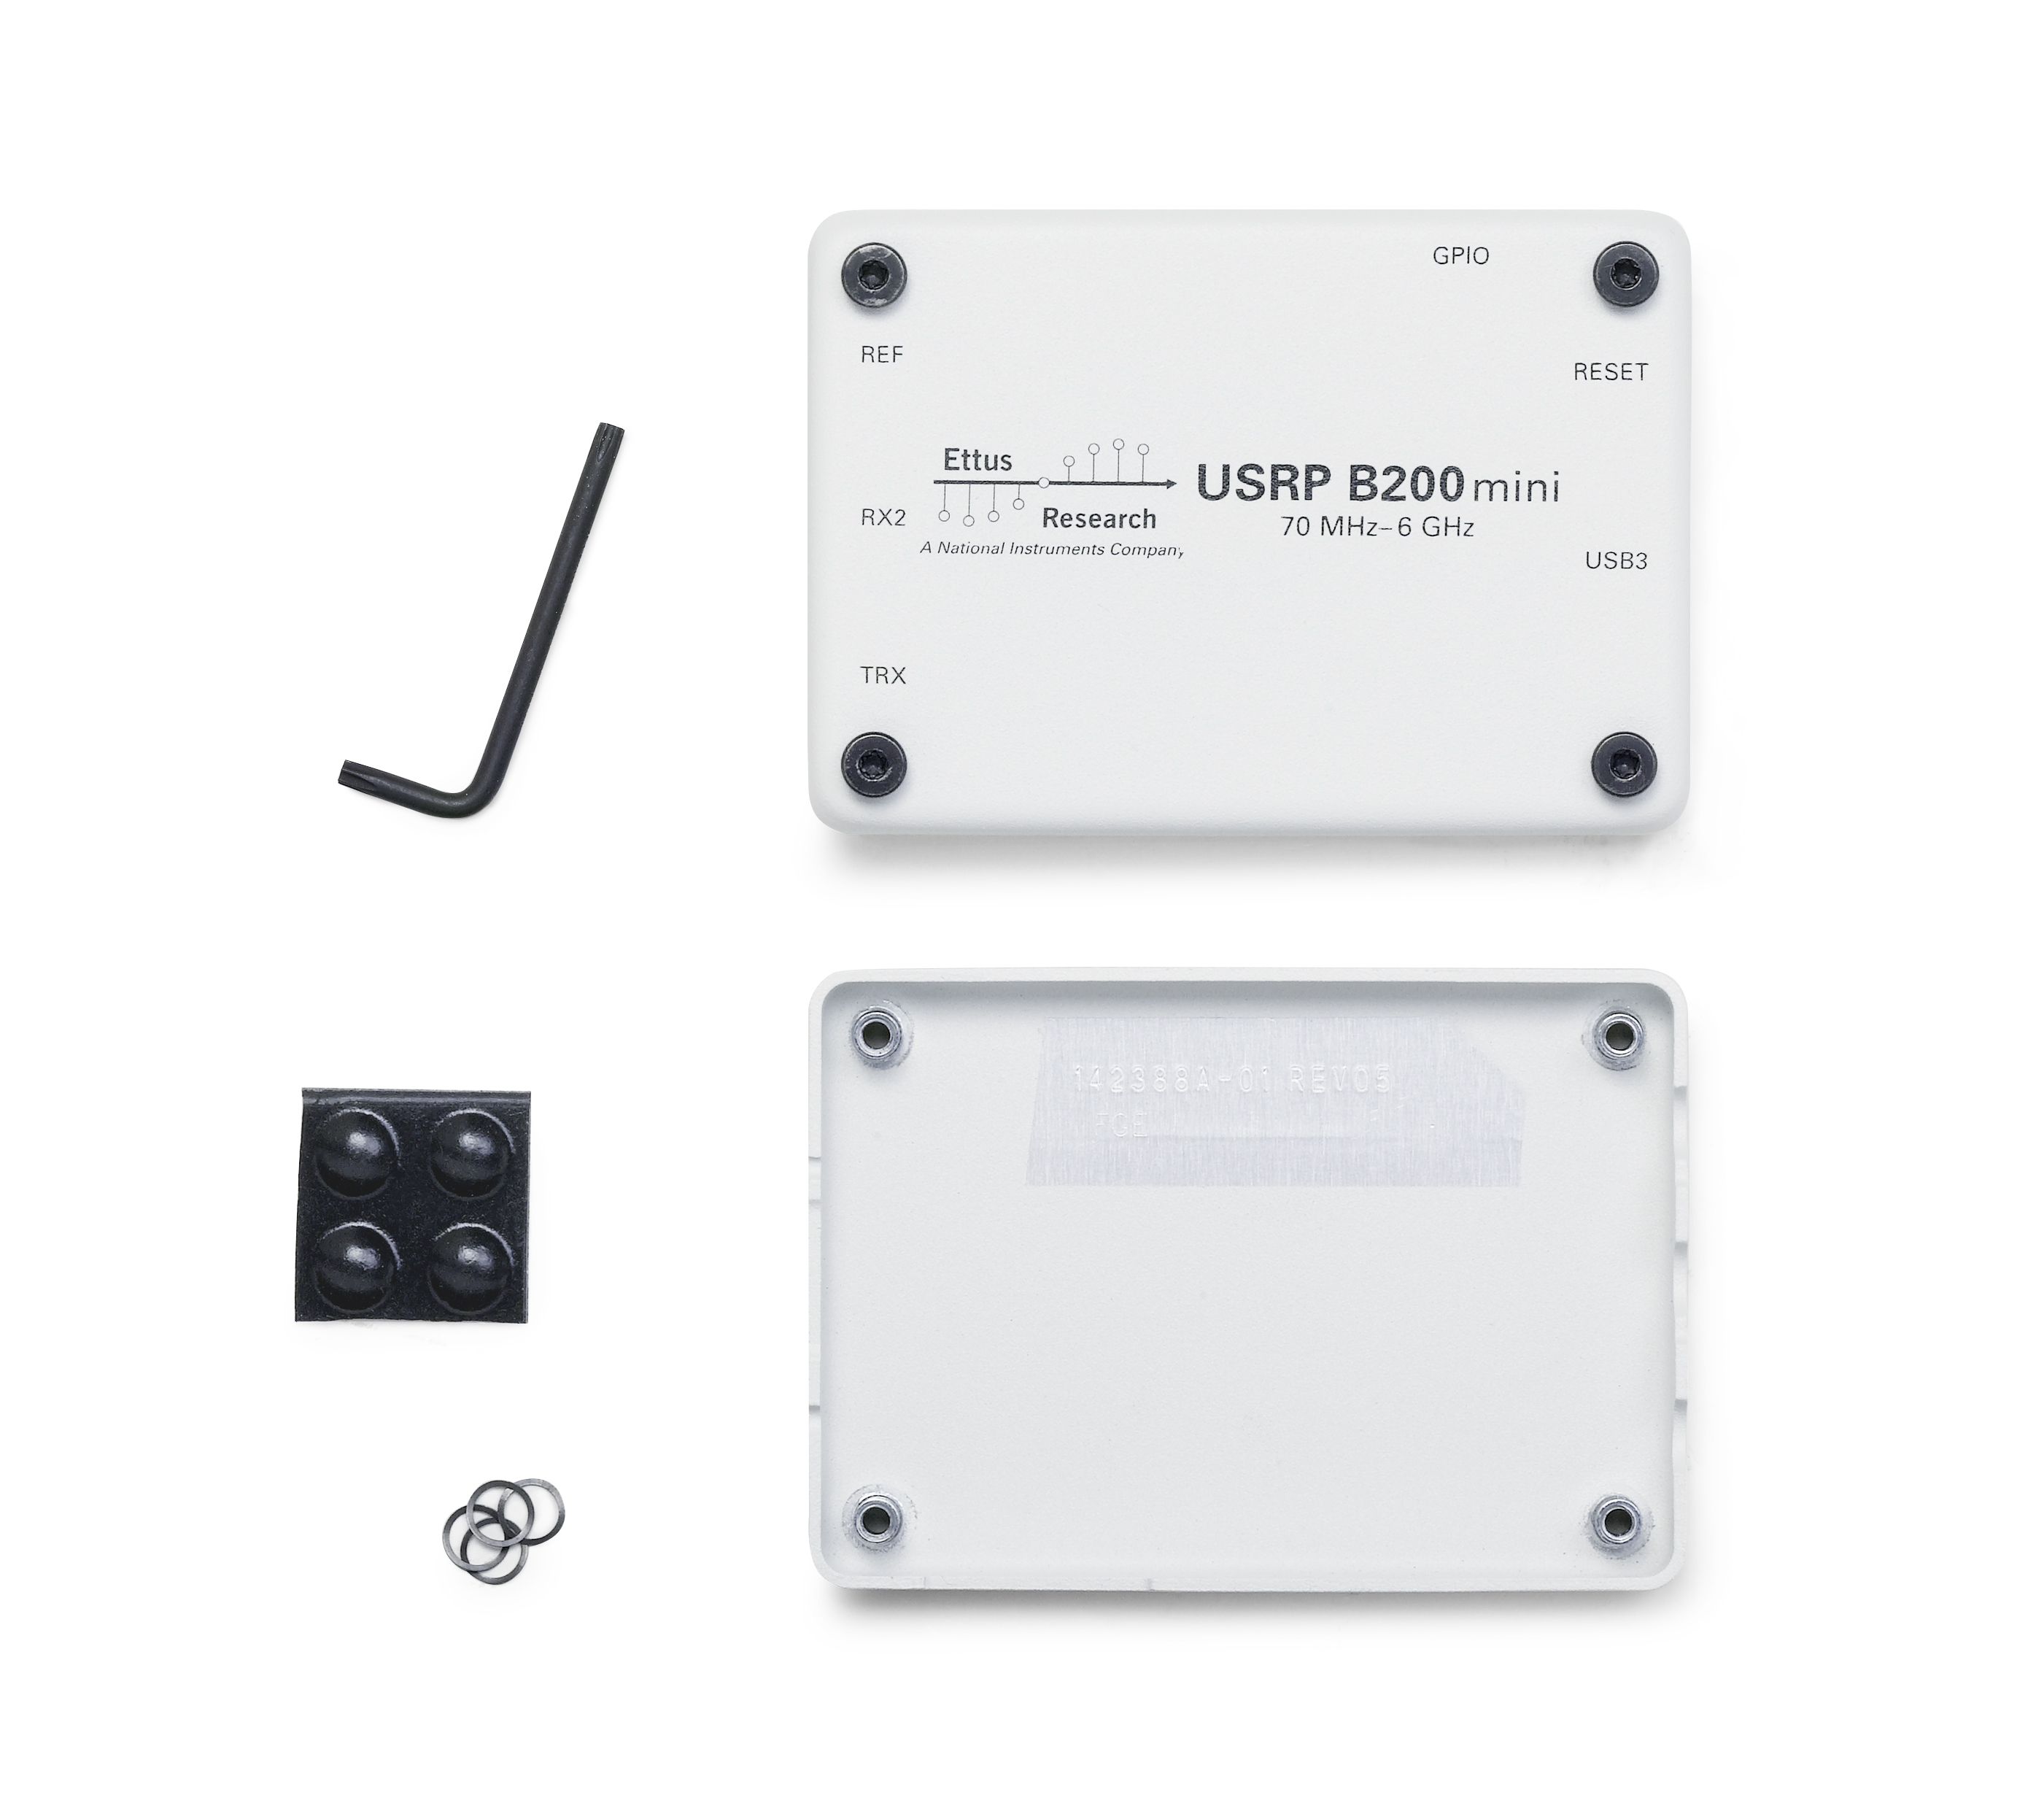 Product - Enclosure kit for USRP B200mini (C-Grade)